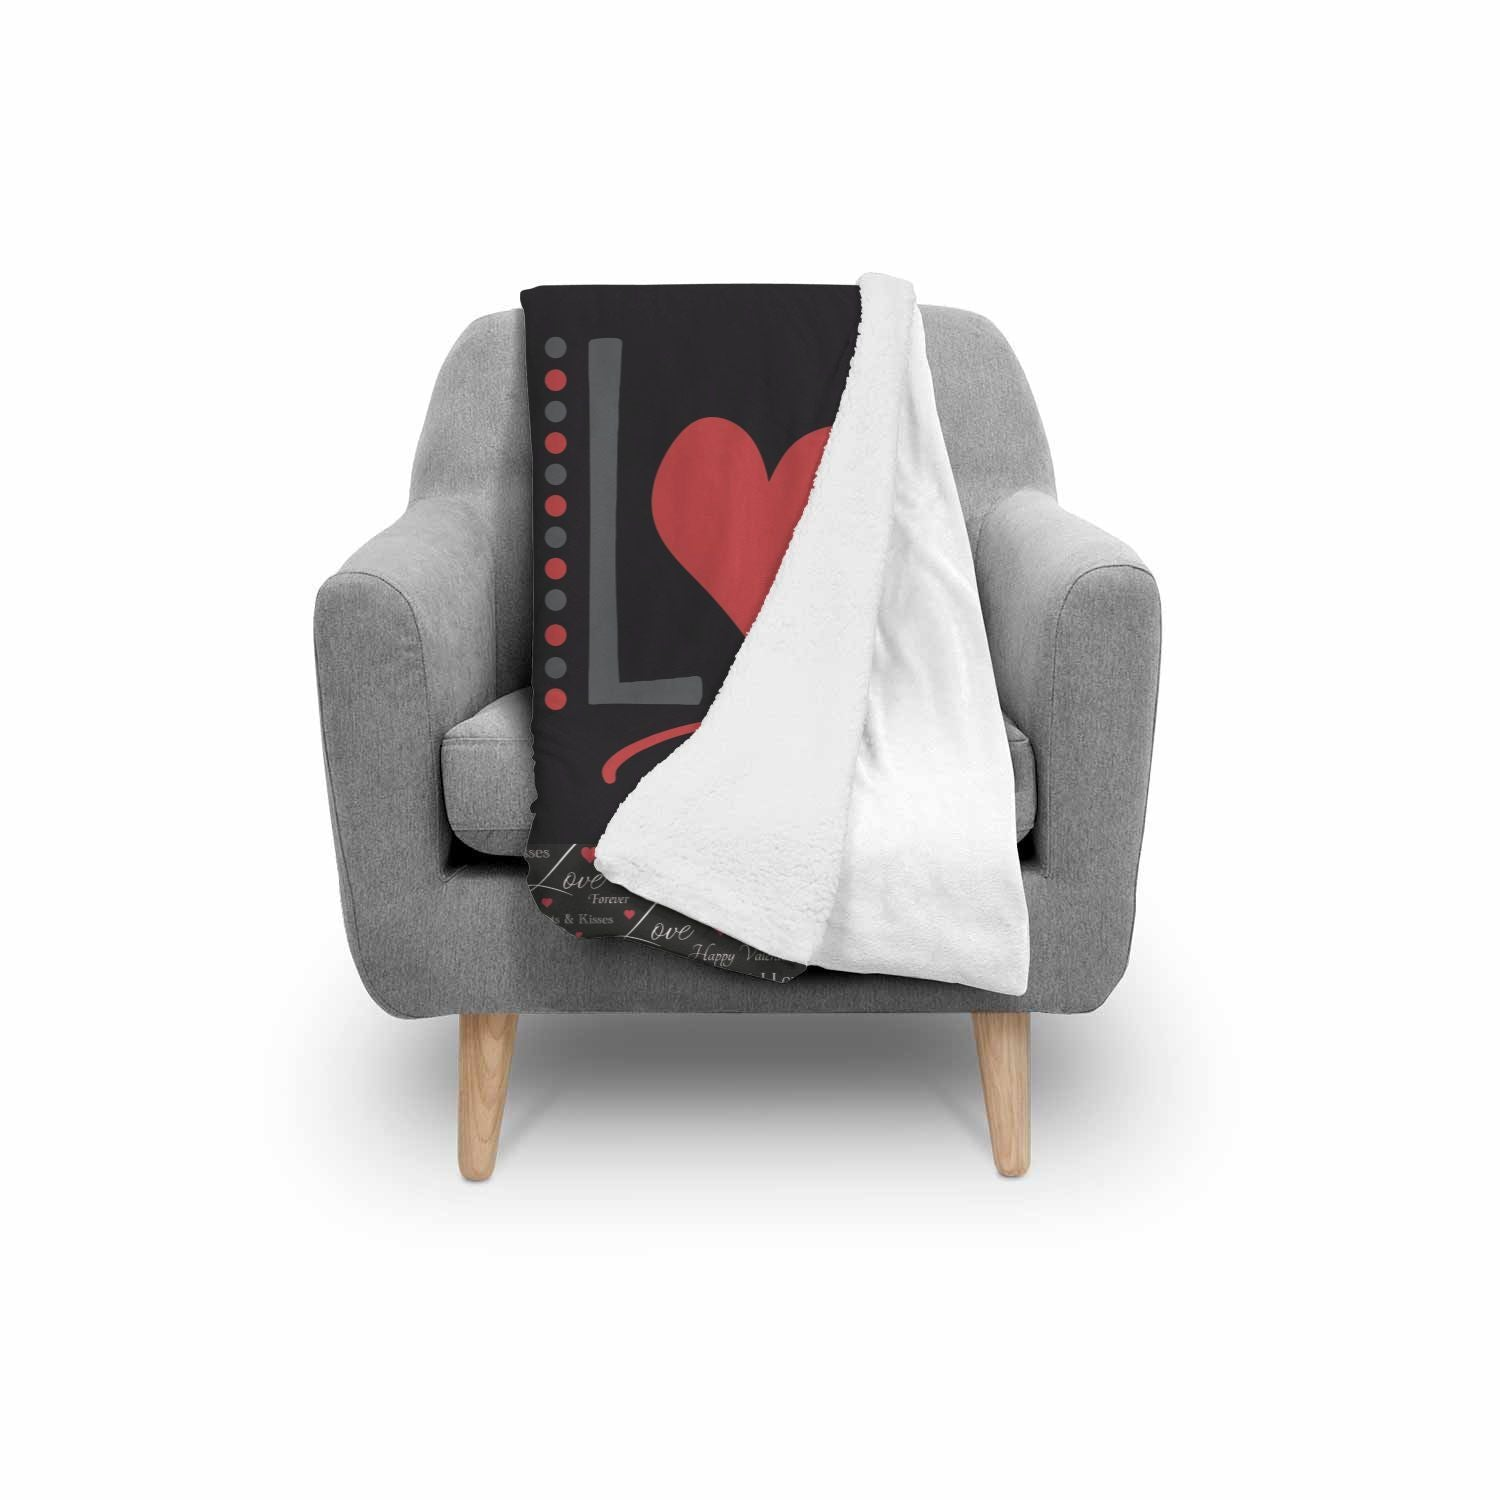 Two Love Design Normal Blanket Towel - Get Set Style Metro